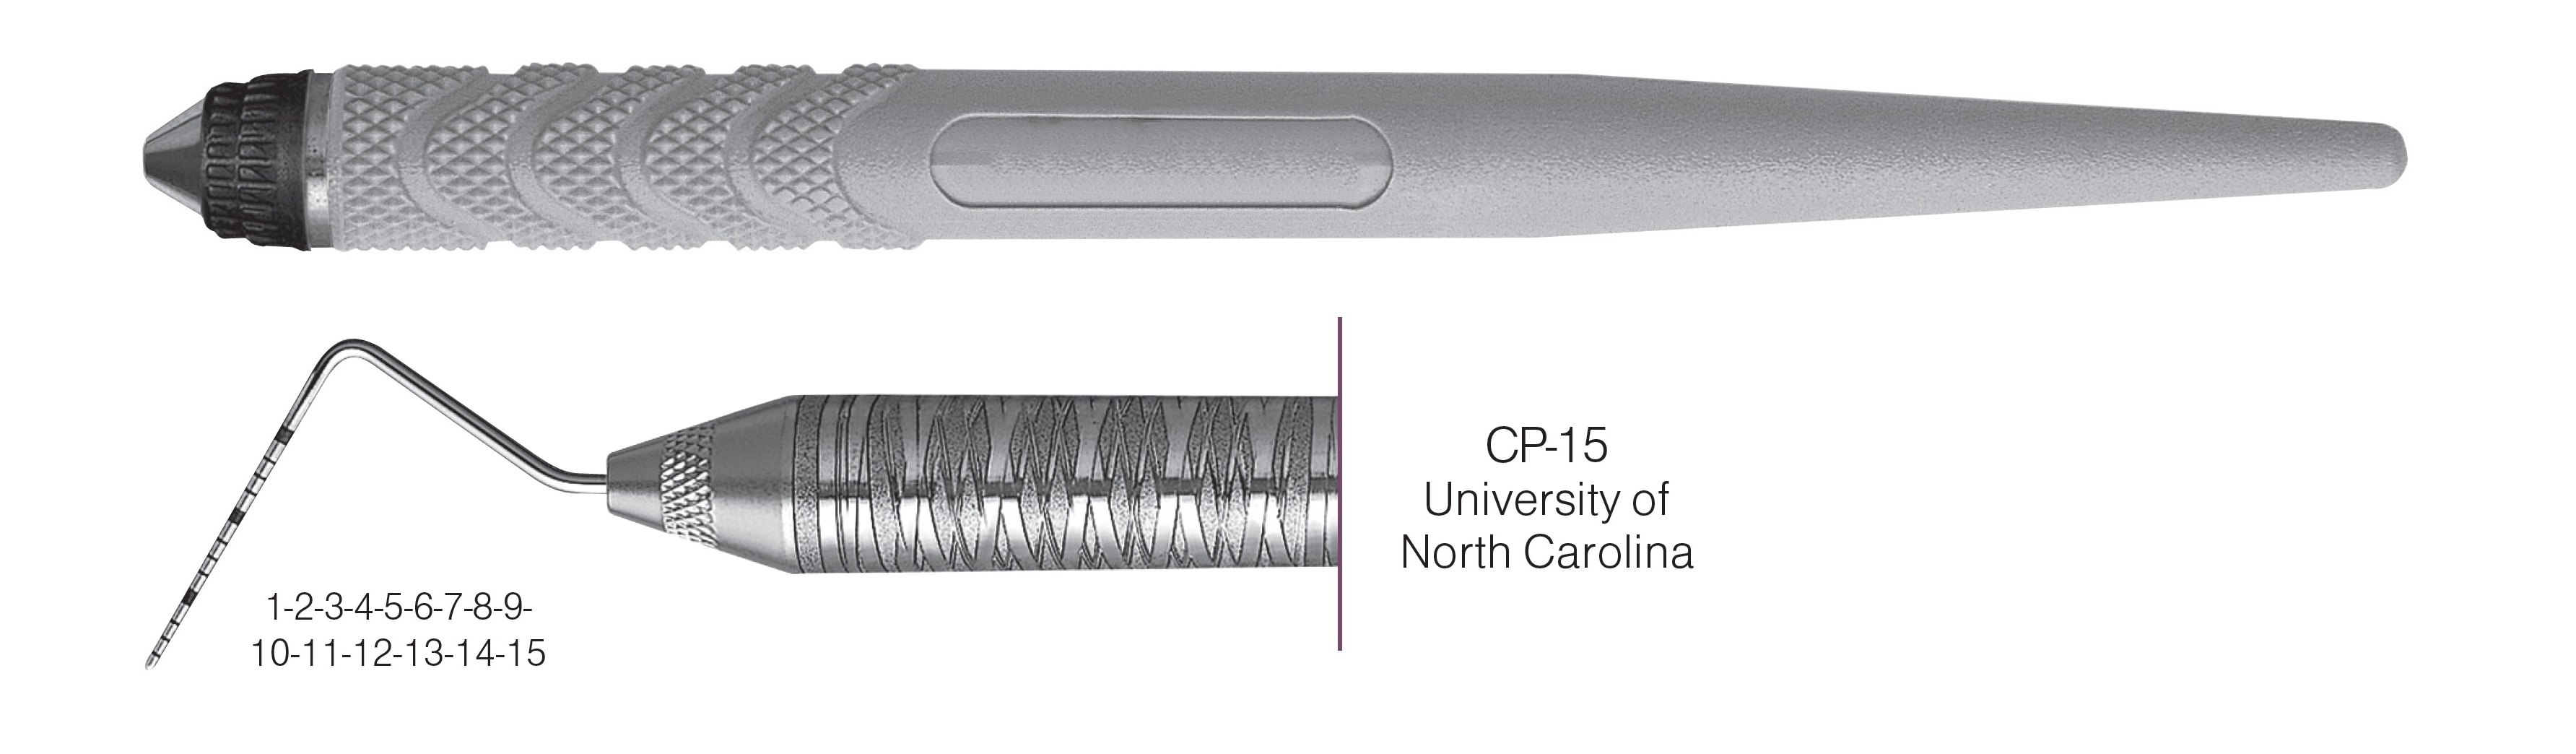 HF-PCPUNC156-8, COLOR-CODED PROBES CP-15 University of North Carolina, Black markings, 1-2-3-4-5-6-7-8-9-10-11-12-13-14-15 mm, Handle Resin Eight, Single End